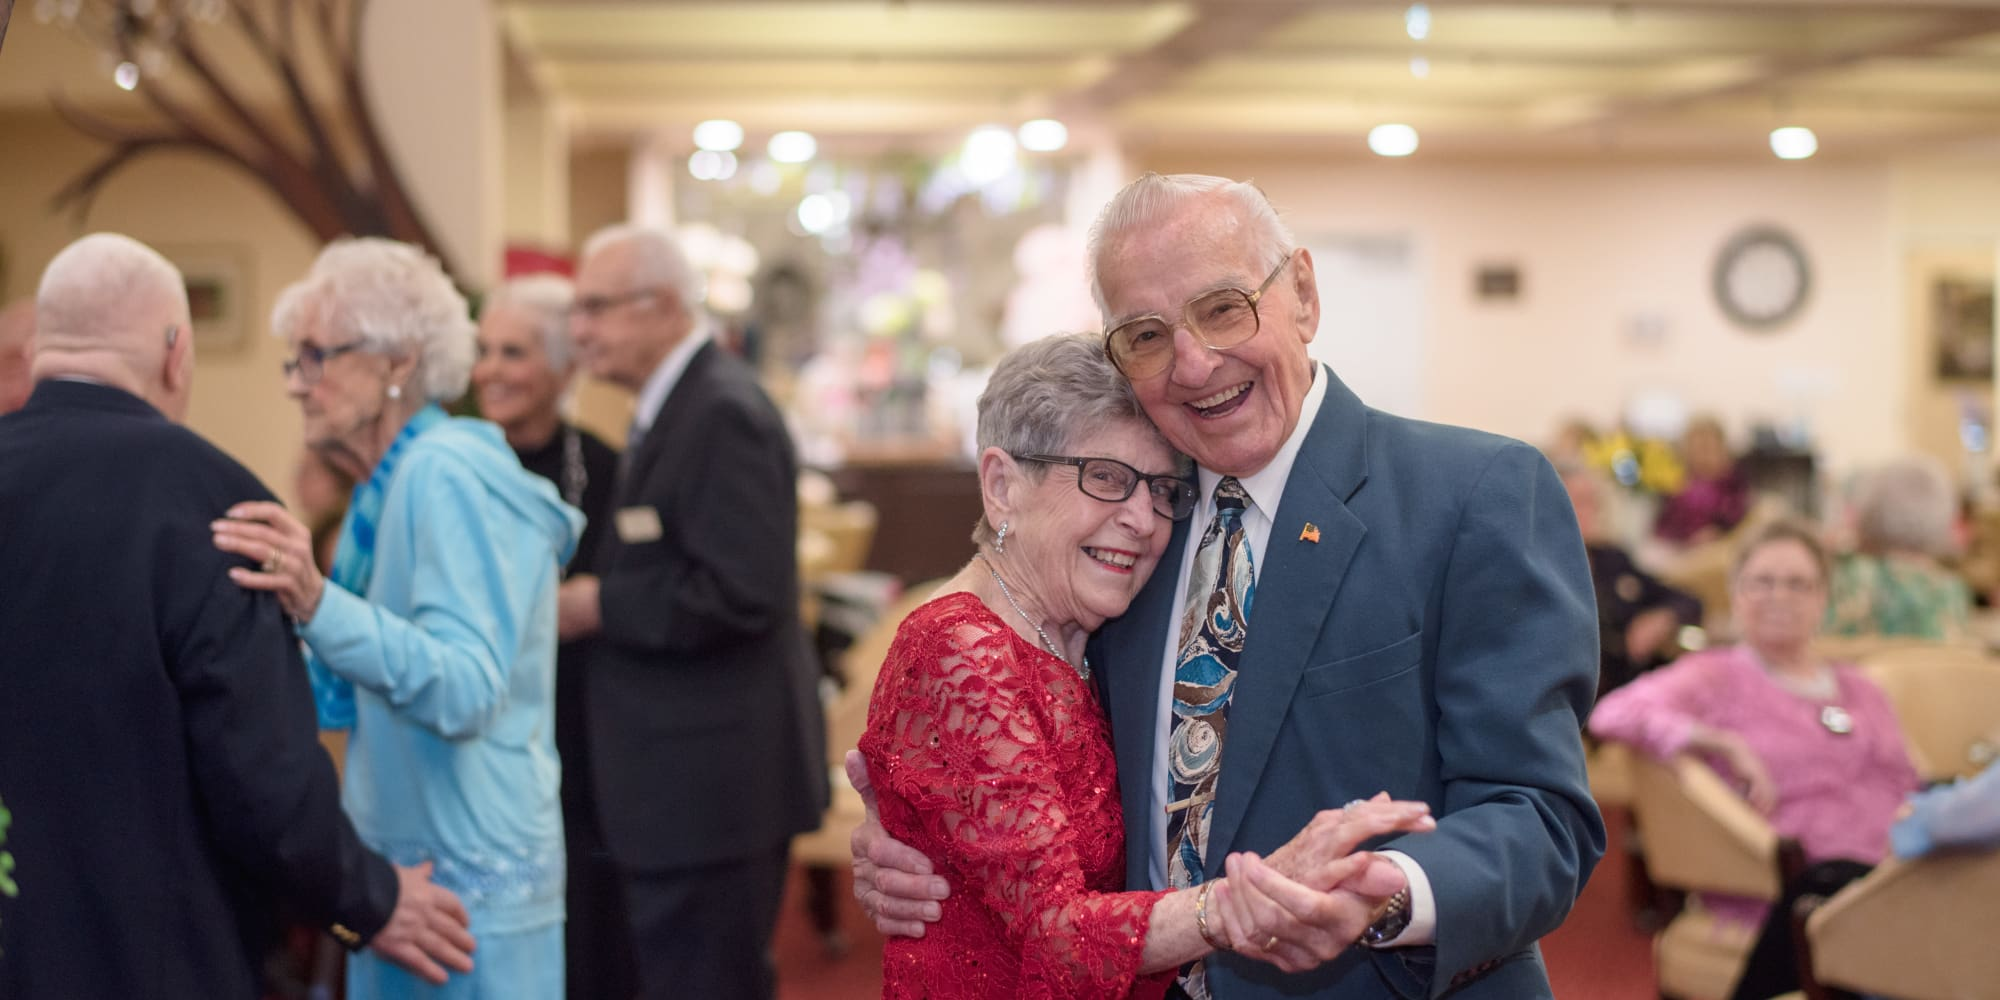 A happy couple dancing together at Camellia Gardens Gracious Retirement Living in Maynard, Massachusetts